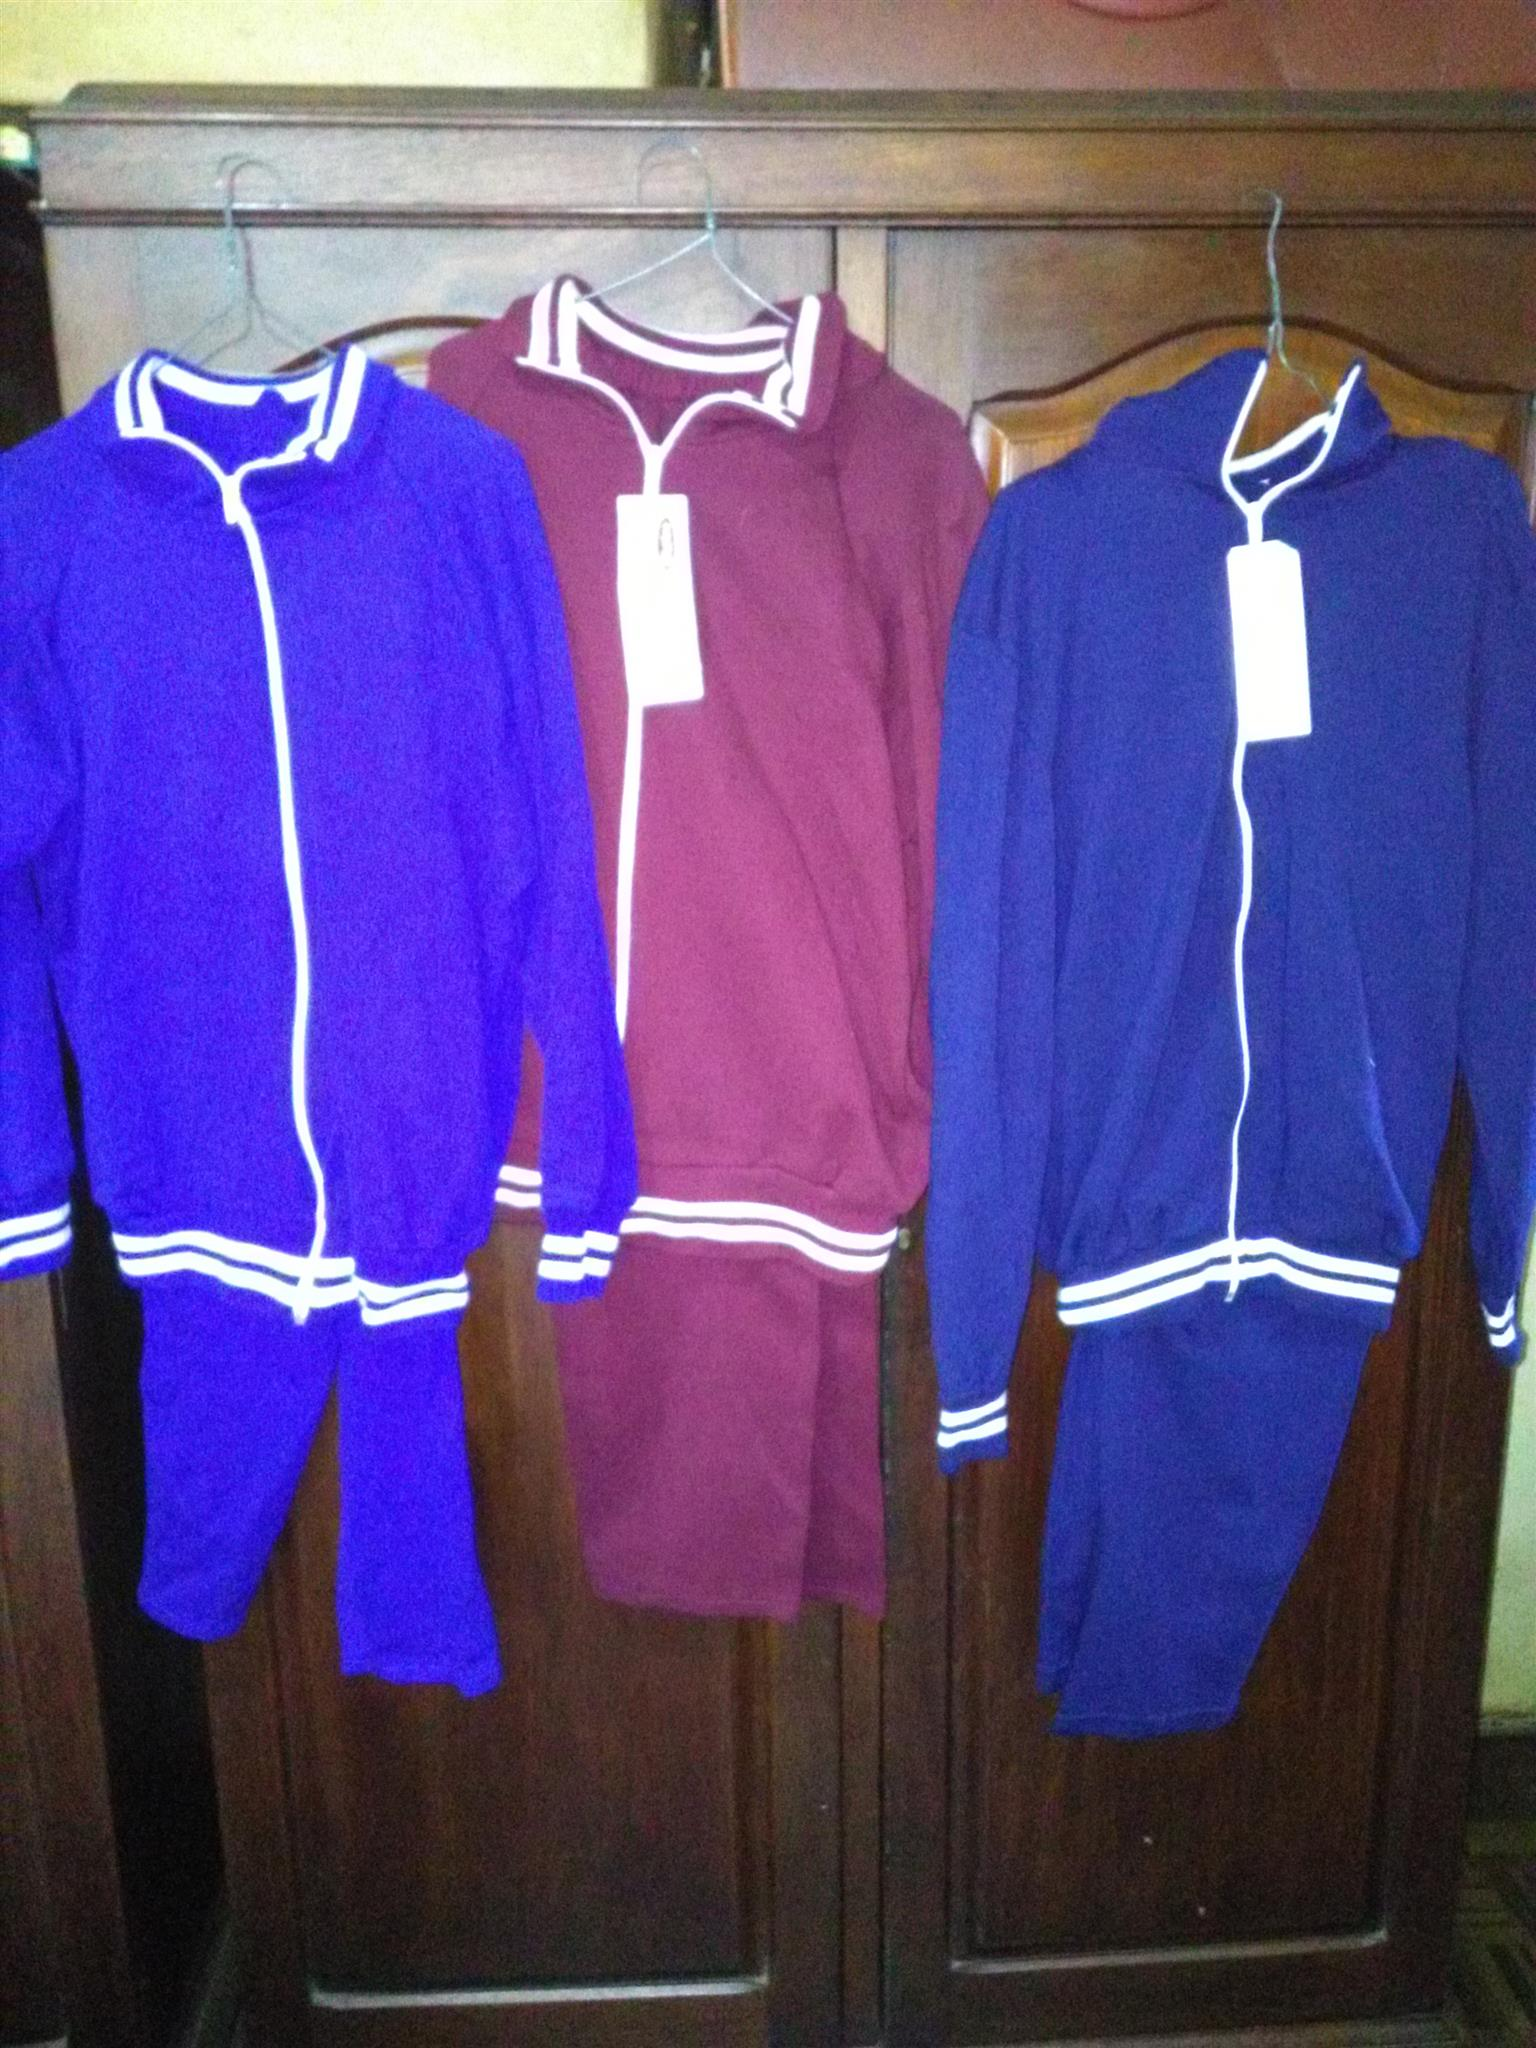 Track suits for sale